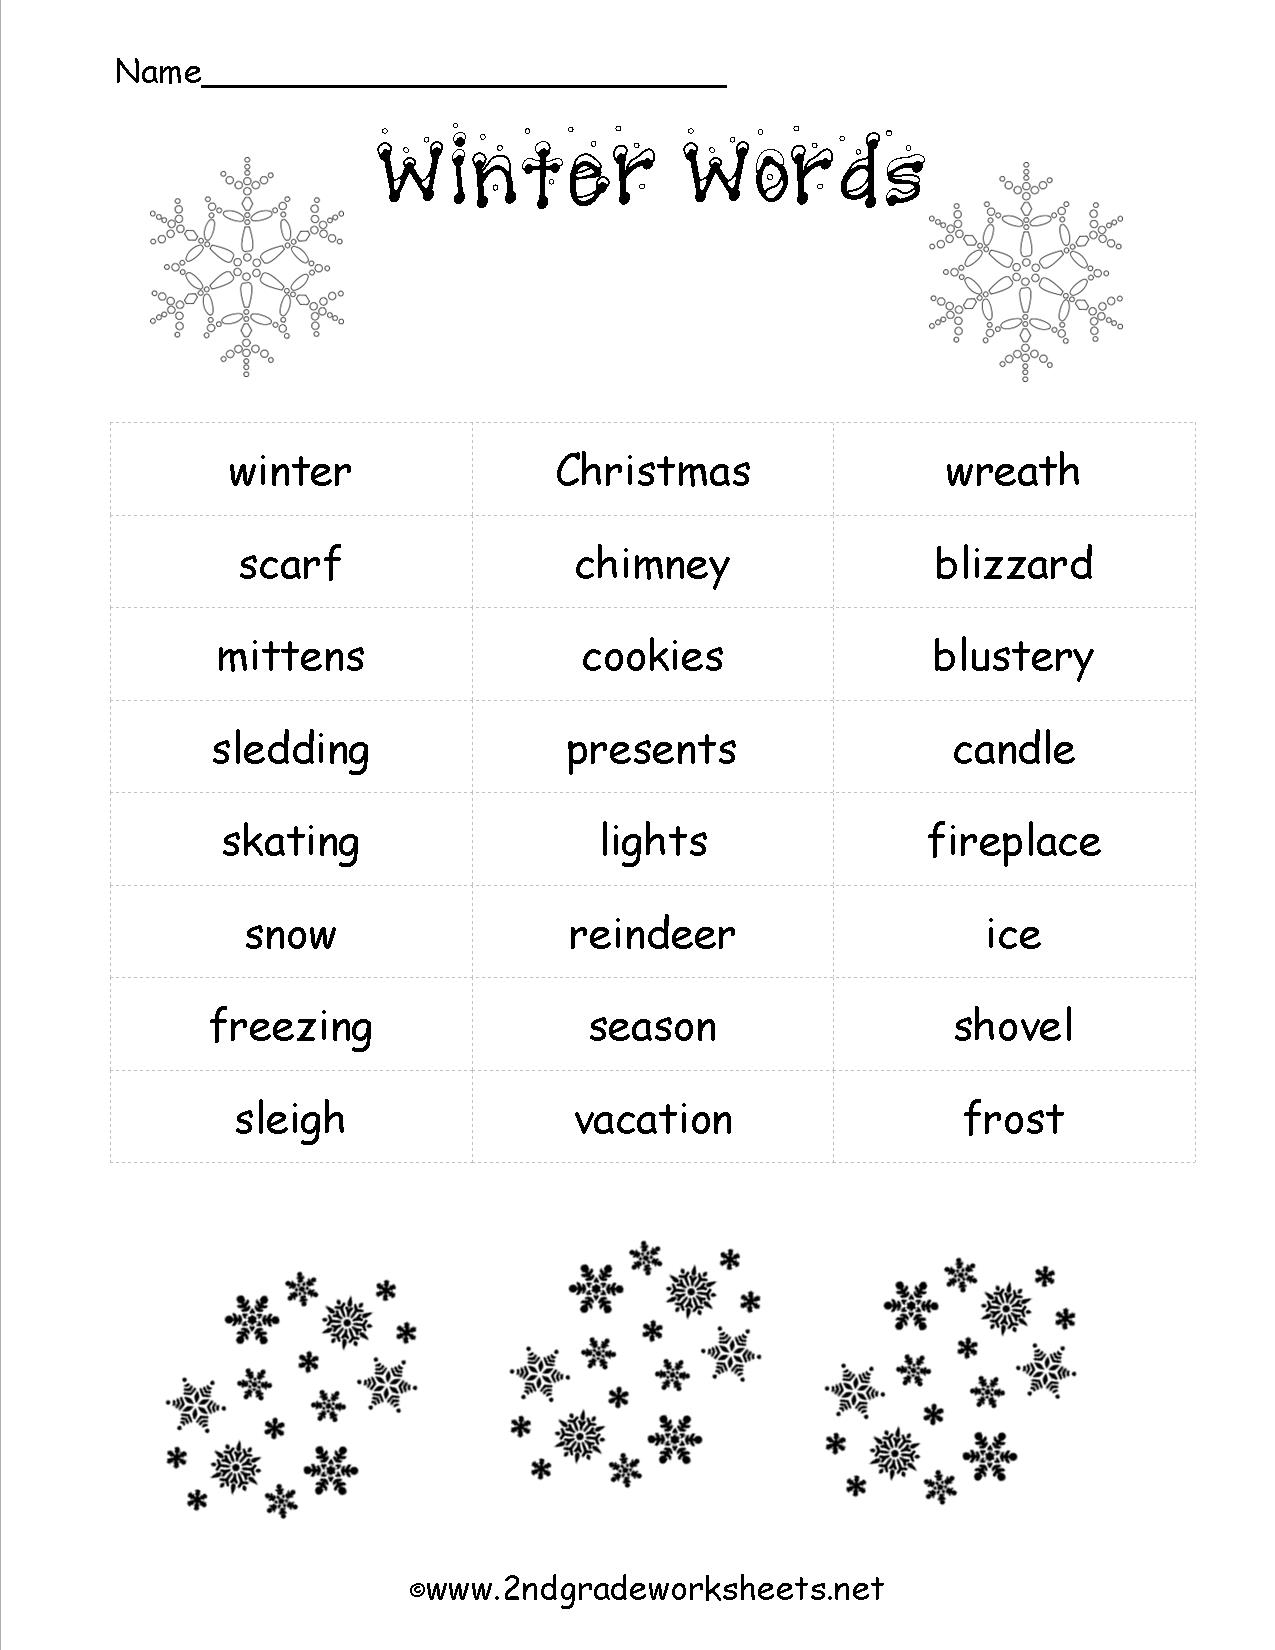 Christmas Worksheets And Printouts - Christmas Fun Worksheets Printable Free